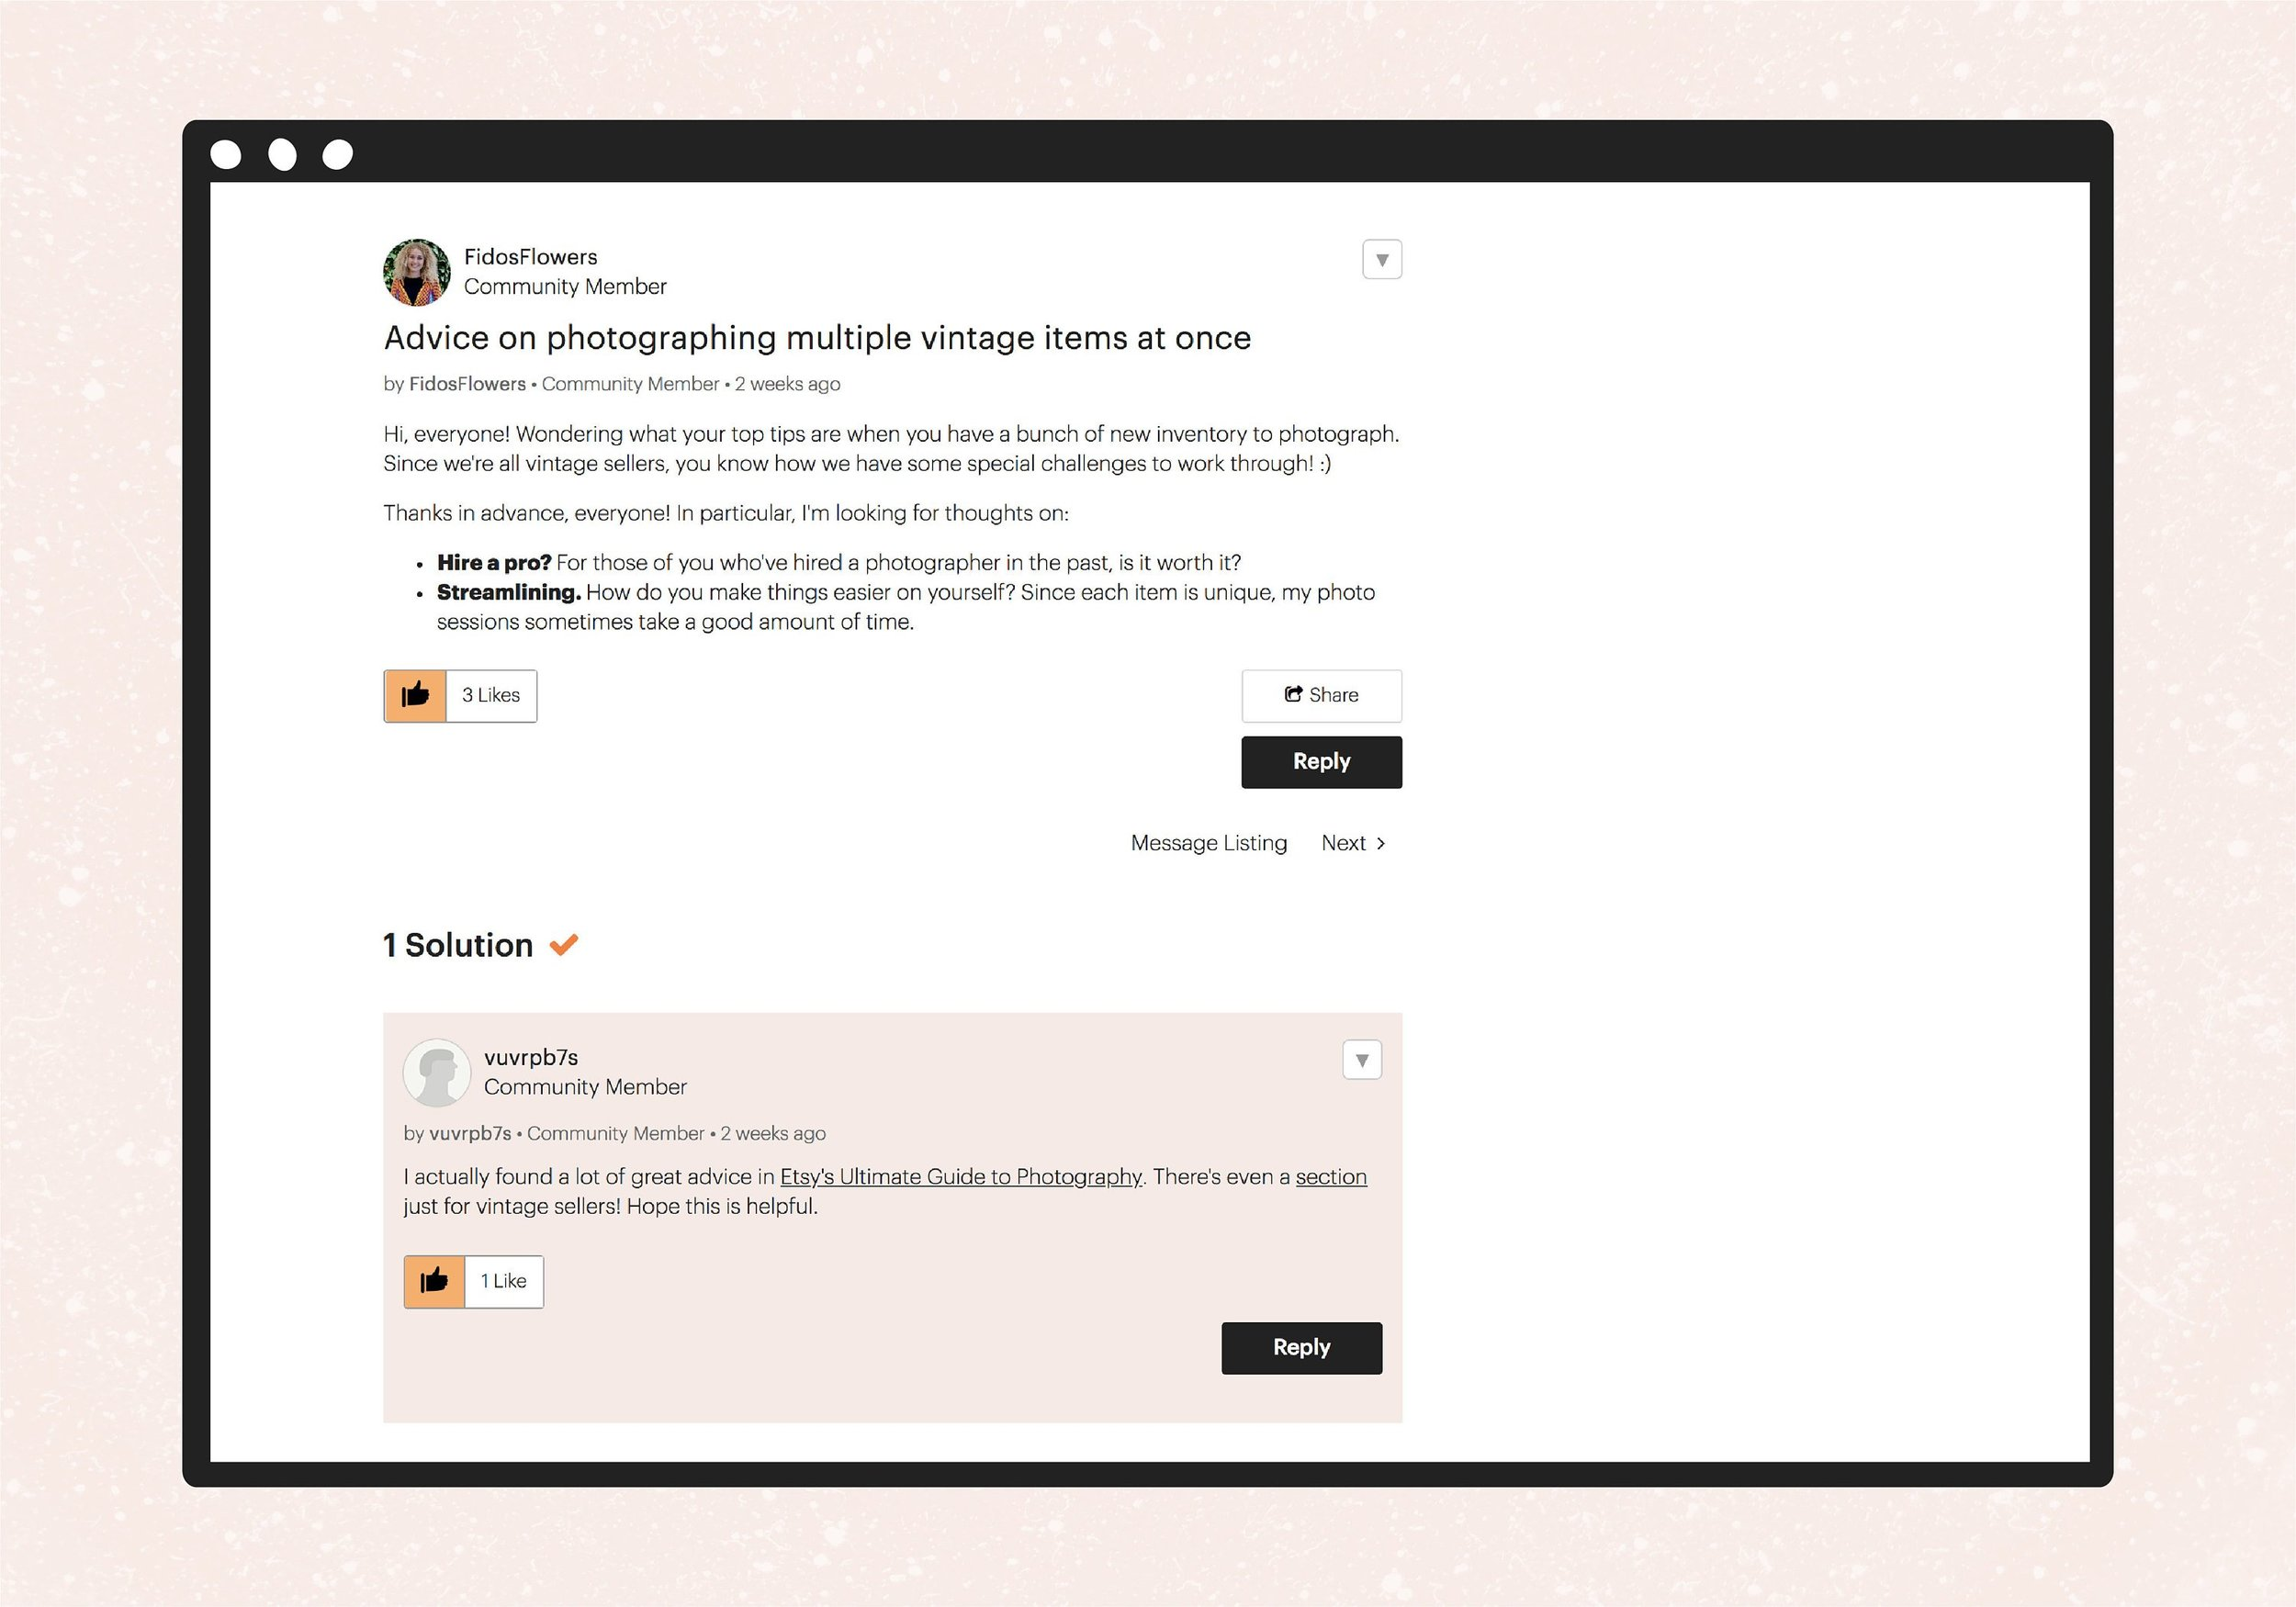 A screenshot of the new Etsy forum, as shown in an Etsy blog post.